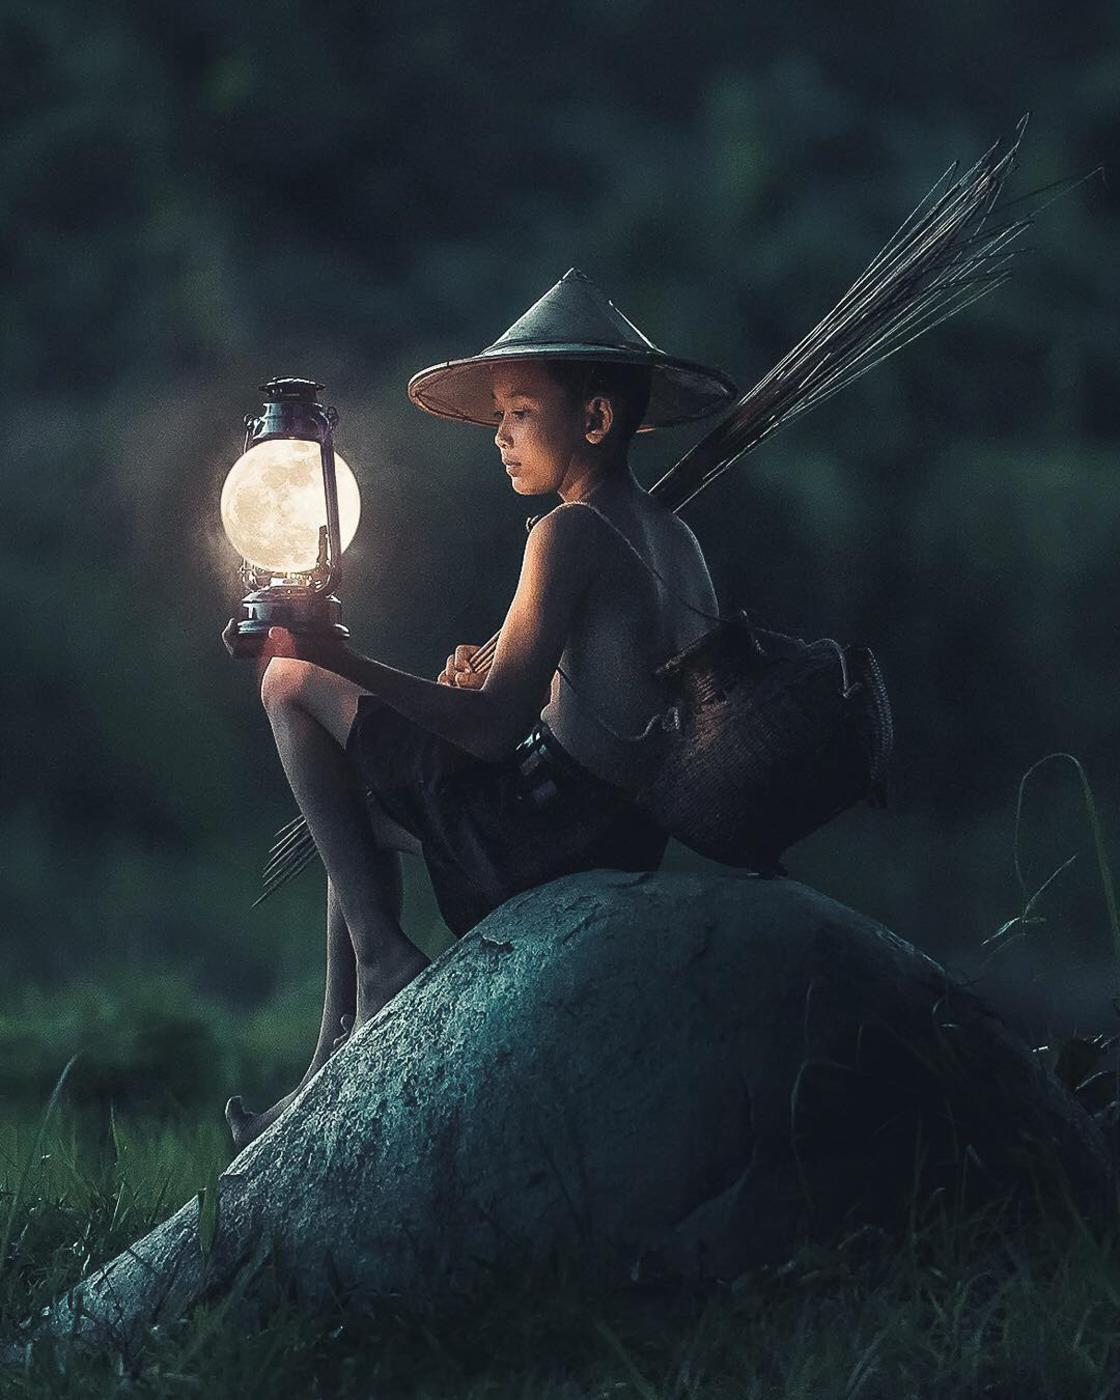 Immerse yourself in the surreal and poetic world of Justin Peters